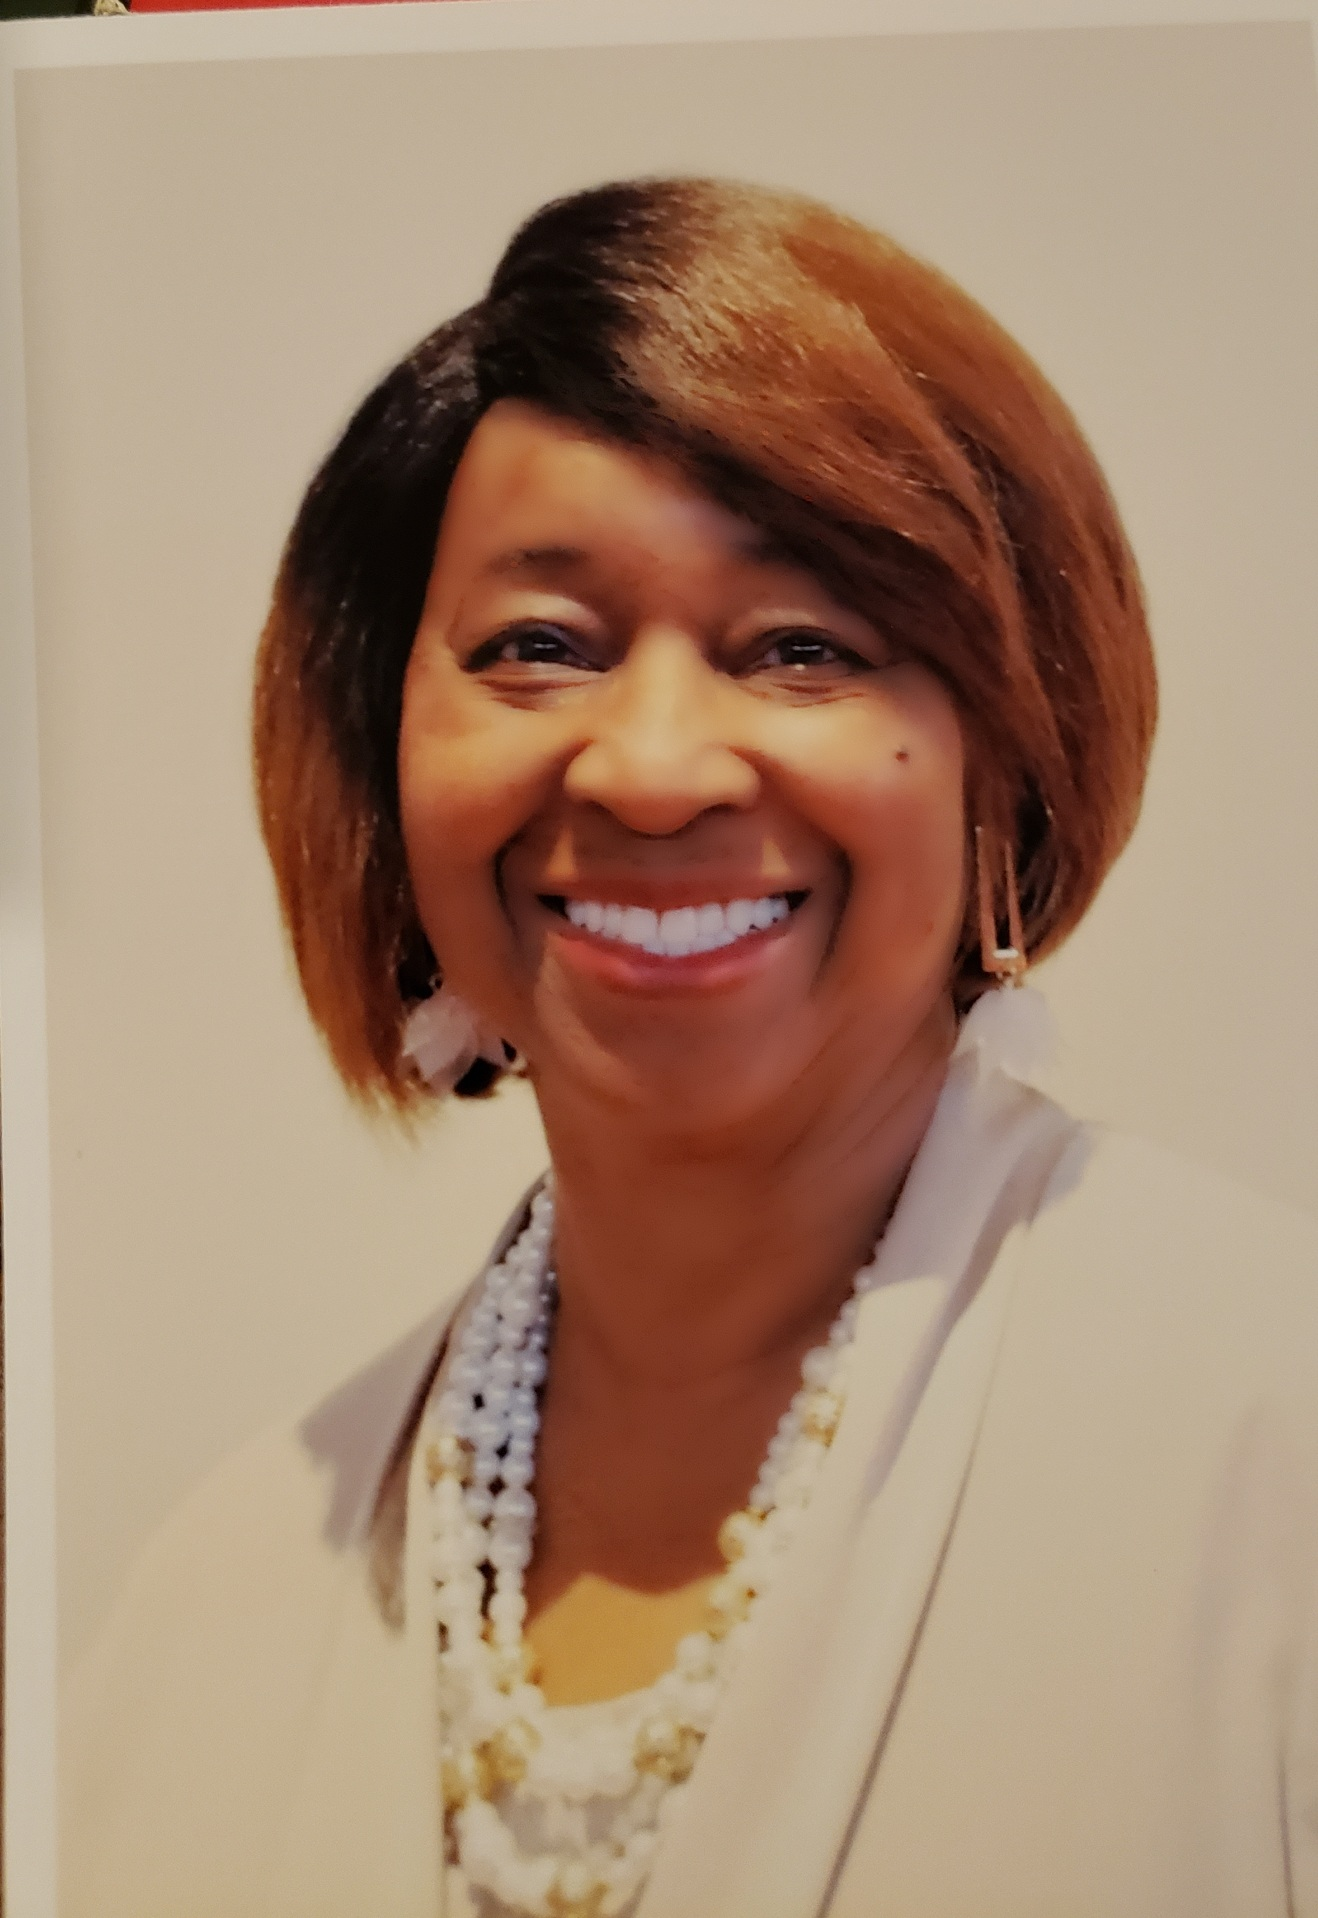 Dr. Edwena Kirby, LPCC, Licensed Professional Clinical Counselor in Winston Salem, NC